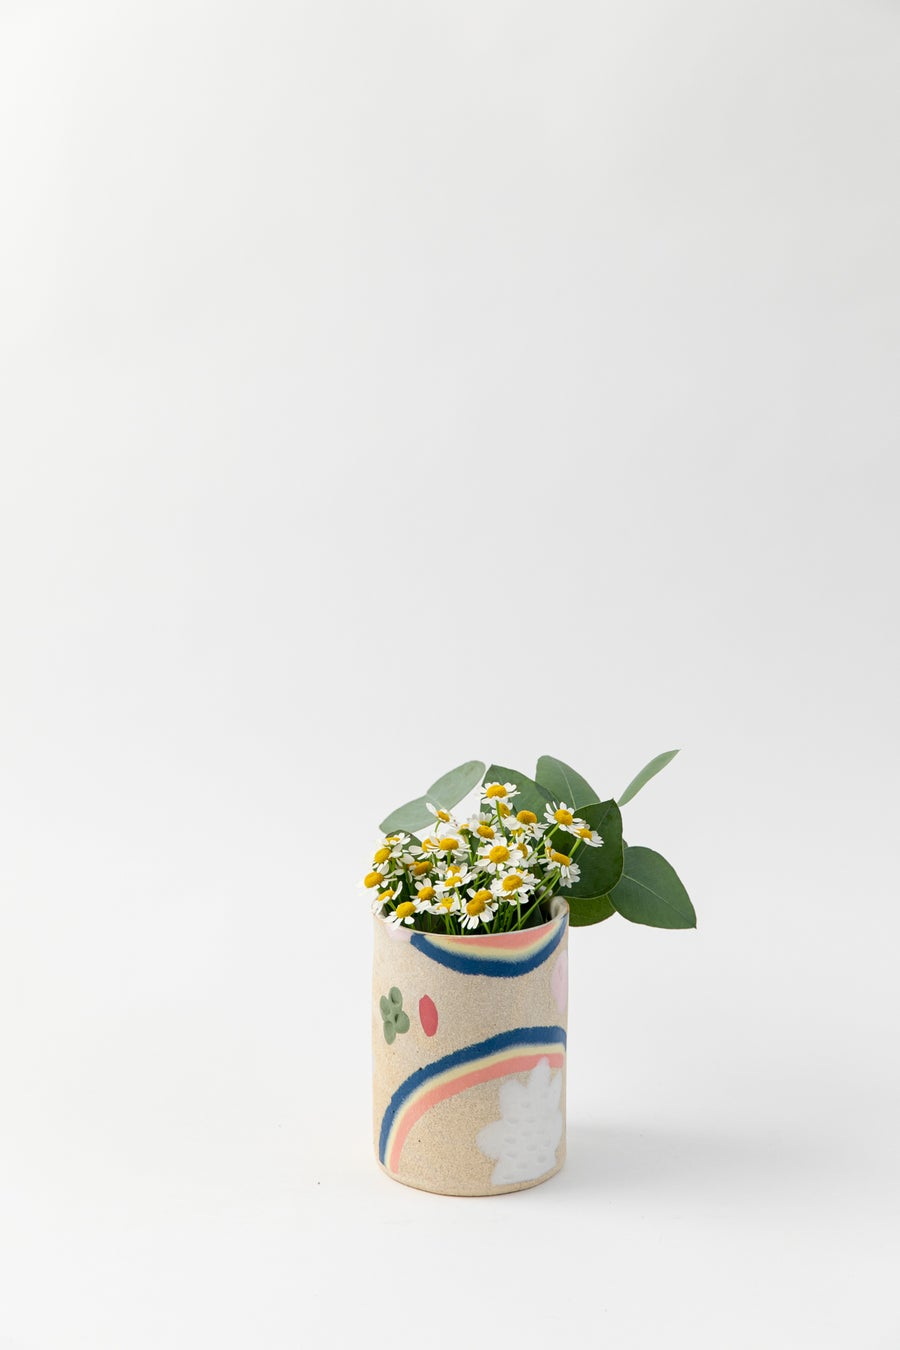 Image of Small Utensil Holder / Vase - Lucky Charms